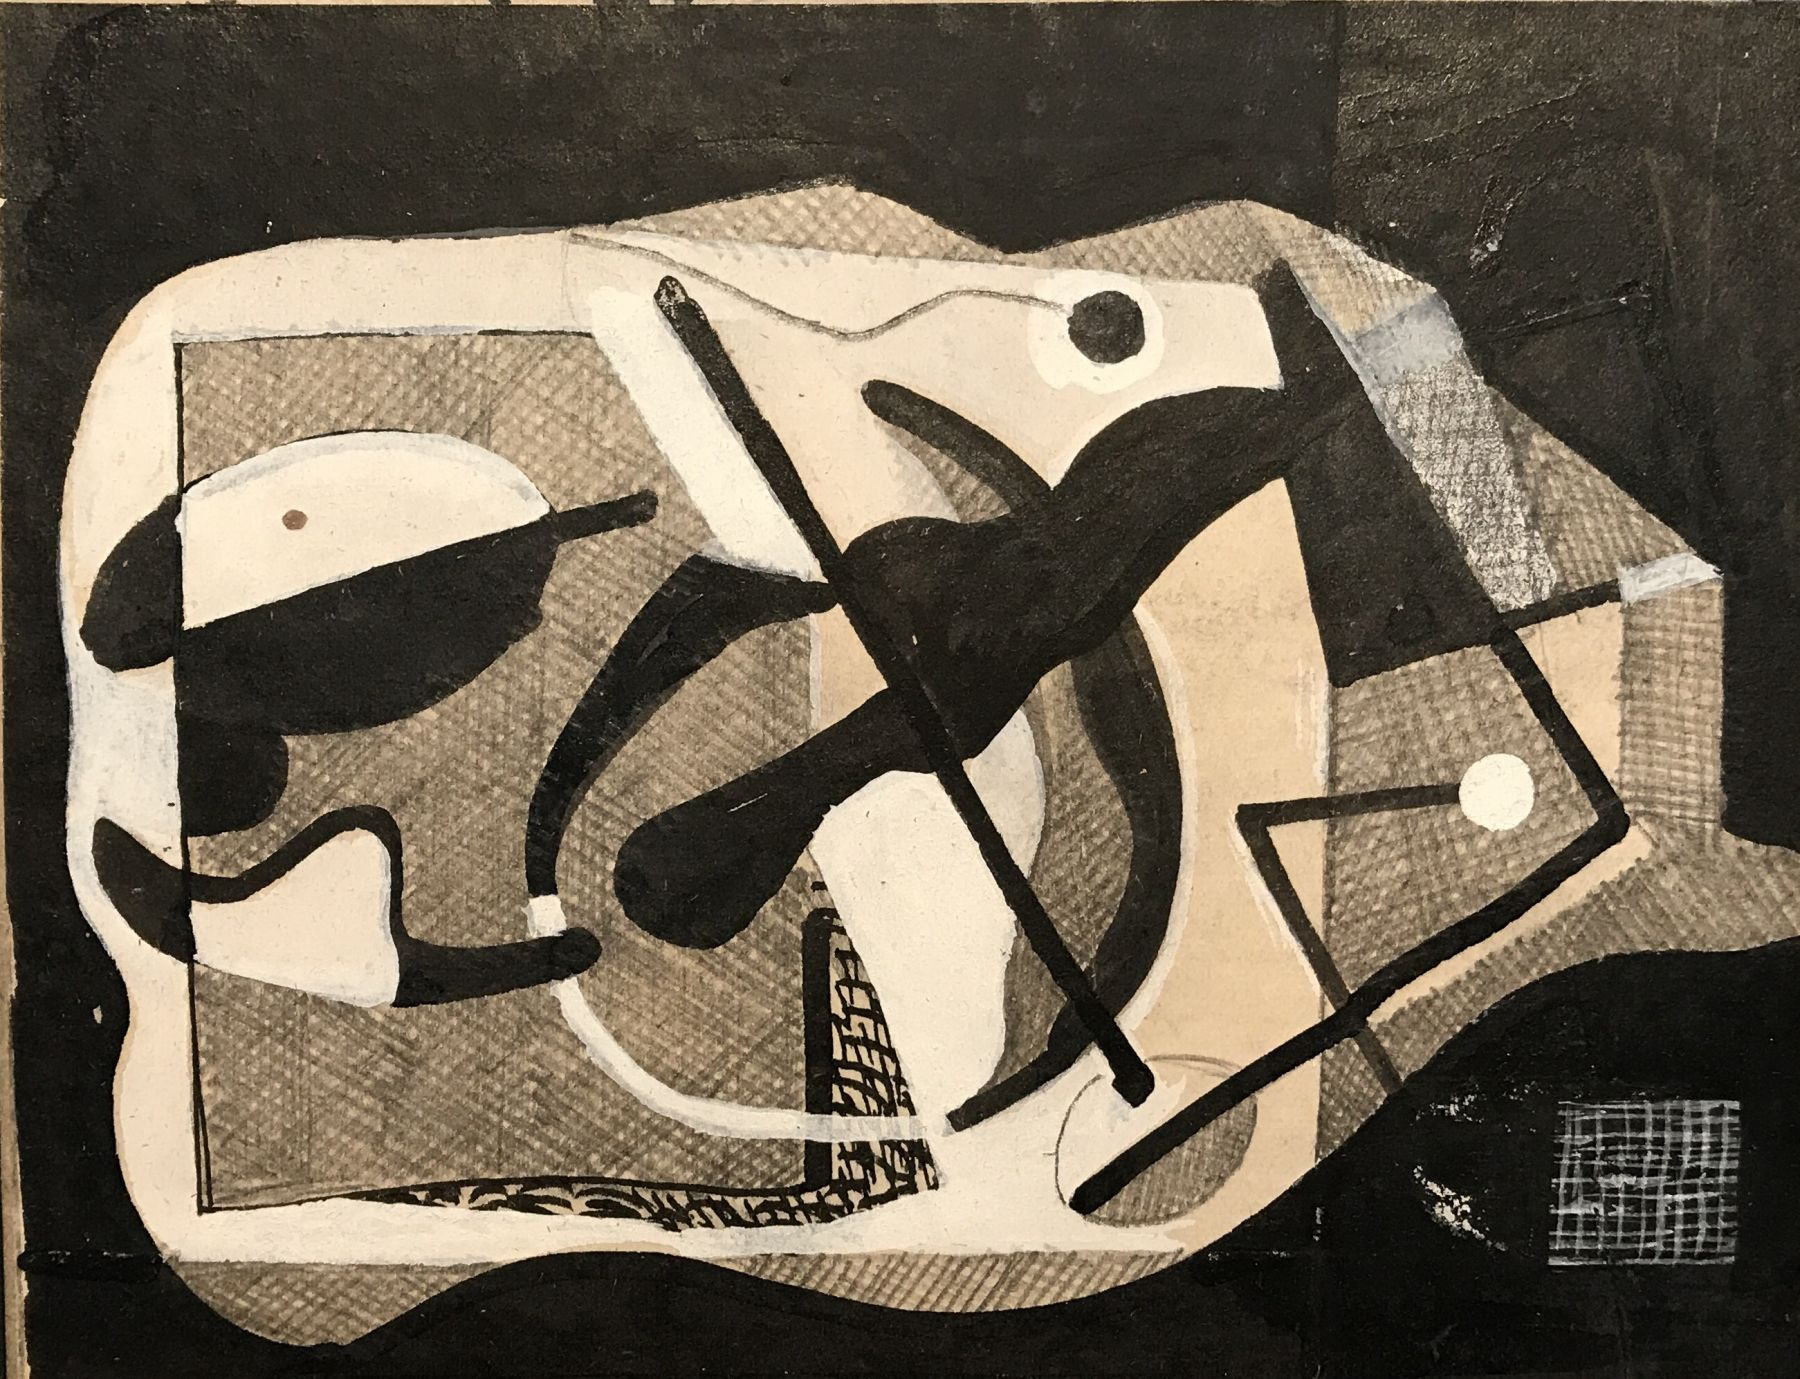 Vaclav Vytlacil, Untitled Abstraction 015